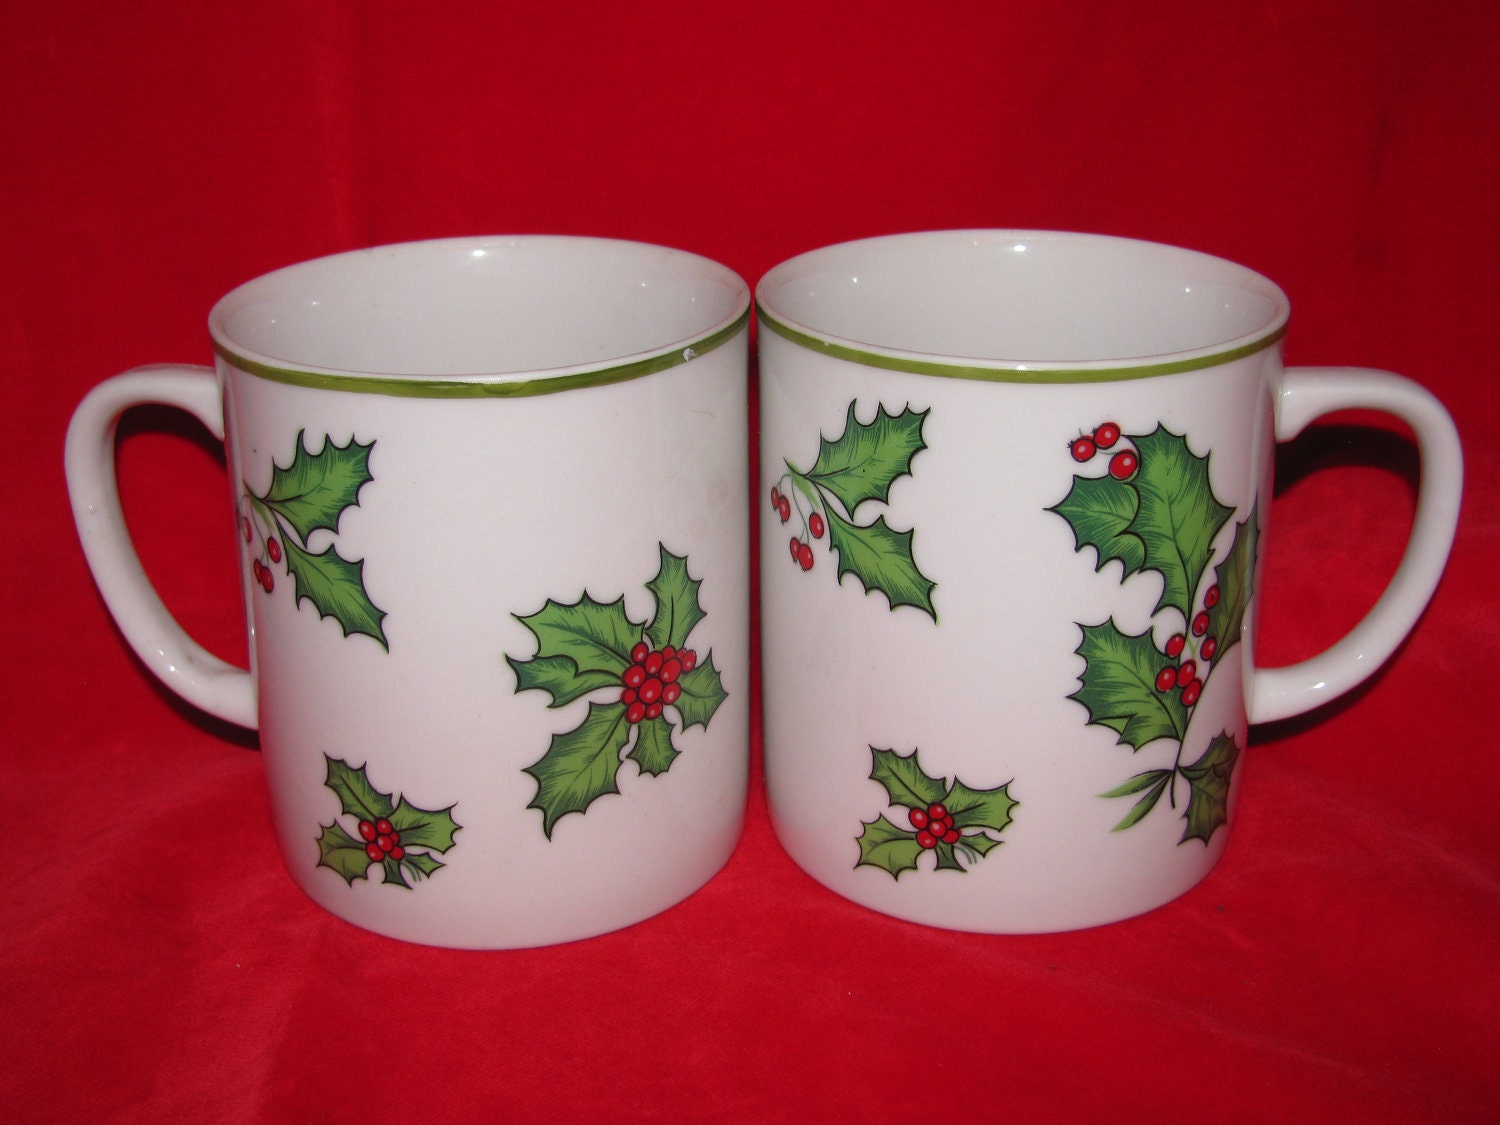 Mugs, 2 Egg Nog Mugs, Porcelain Made in Japan, Festive Coffee Mugs